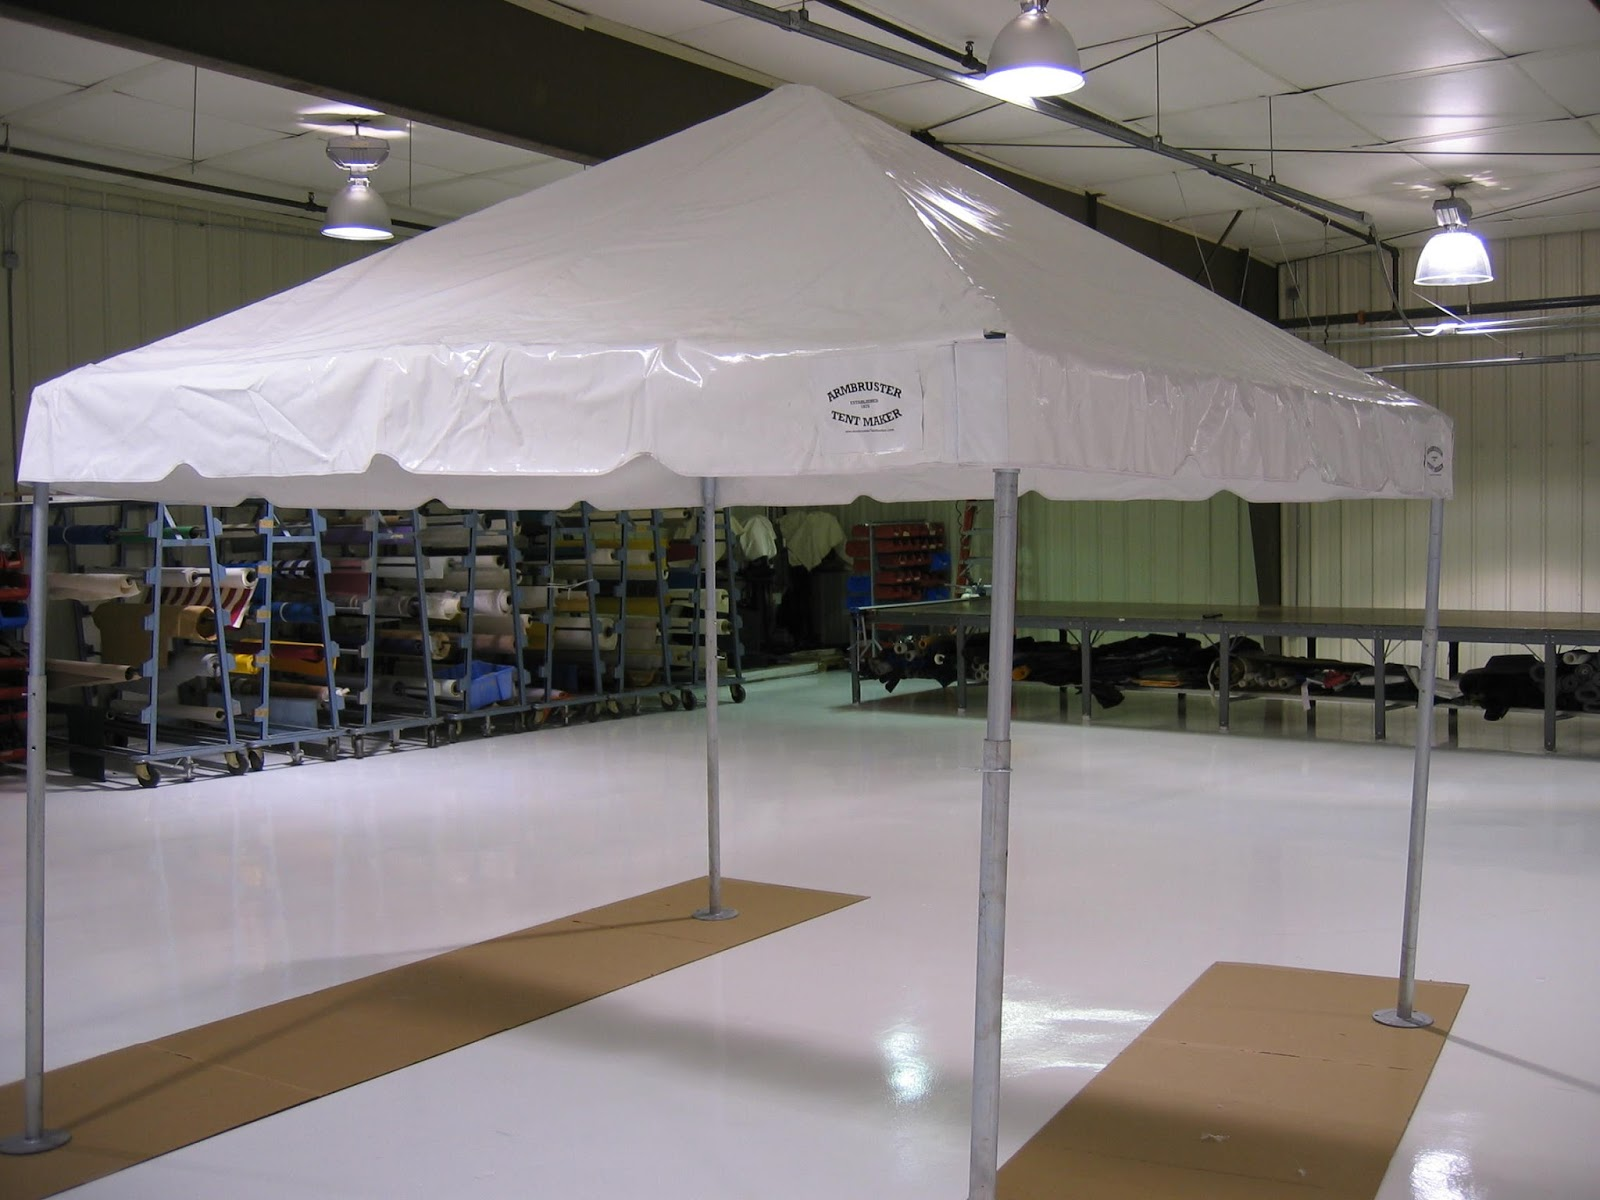 USED Tents on sale from ARMBRUSTER & USED Tents on sale from ARMBRUSTER | Armbruster Tent Maker